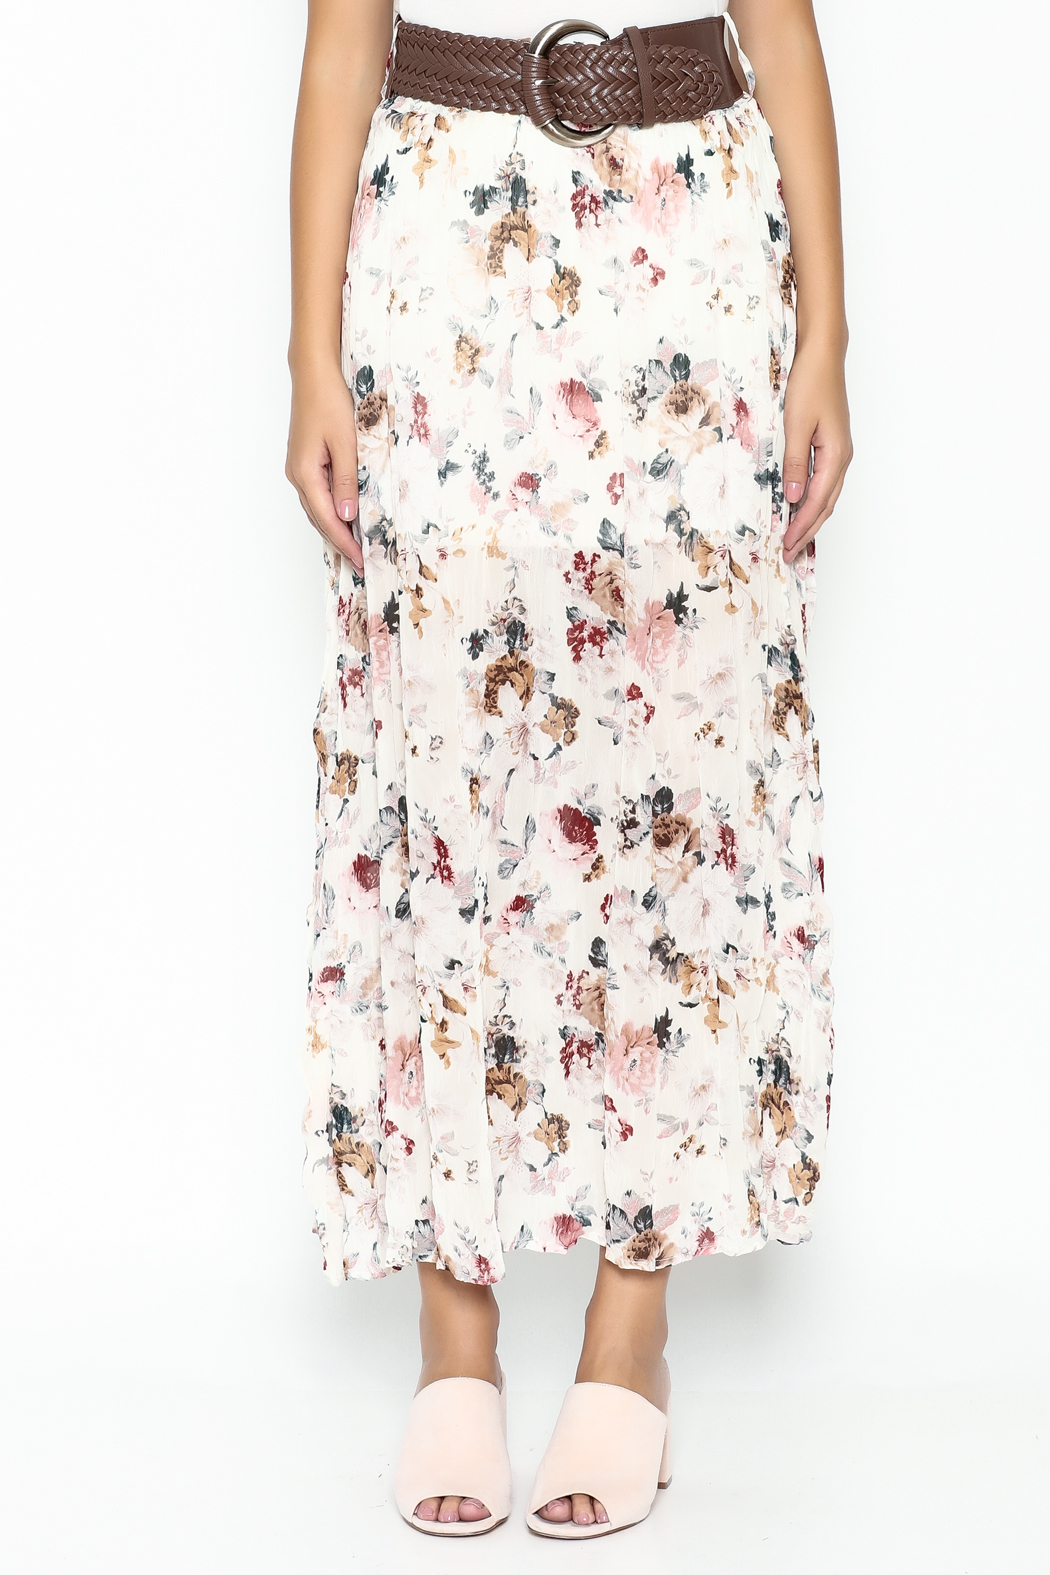 miss avenue  Belted Floral Skirt - Front Full Image